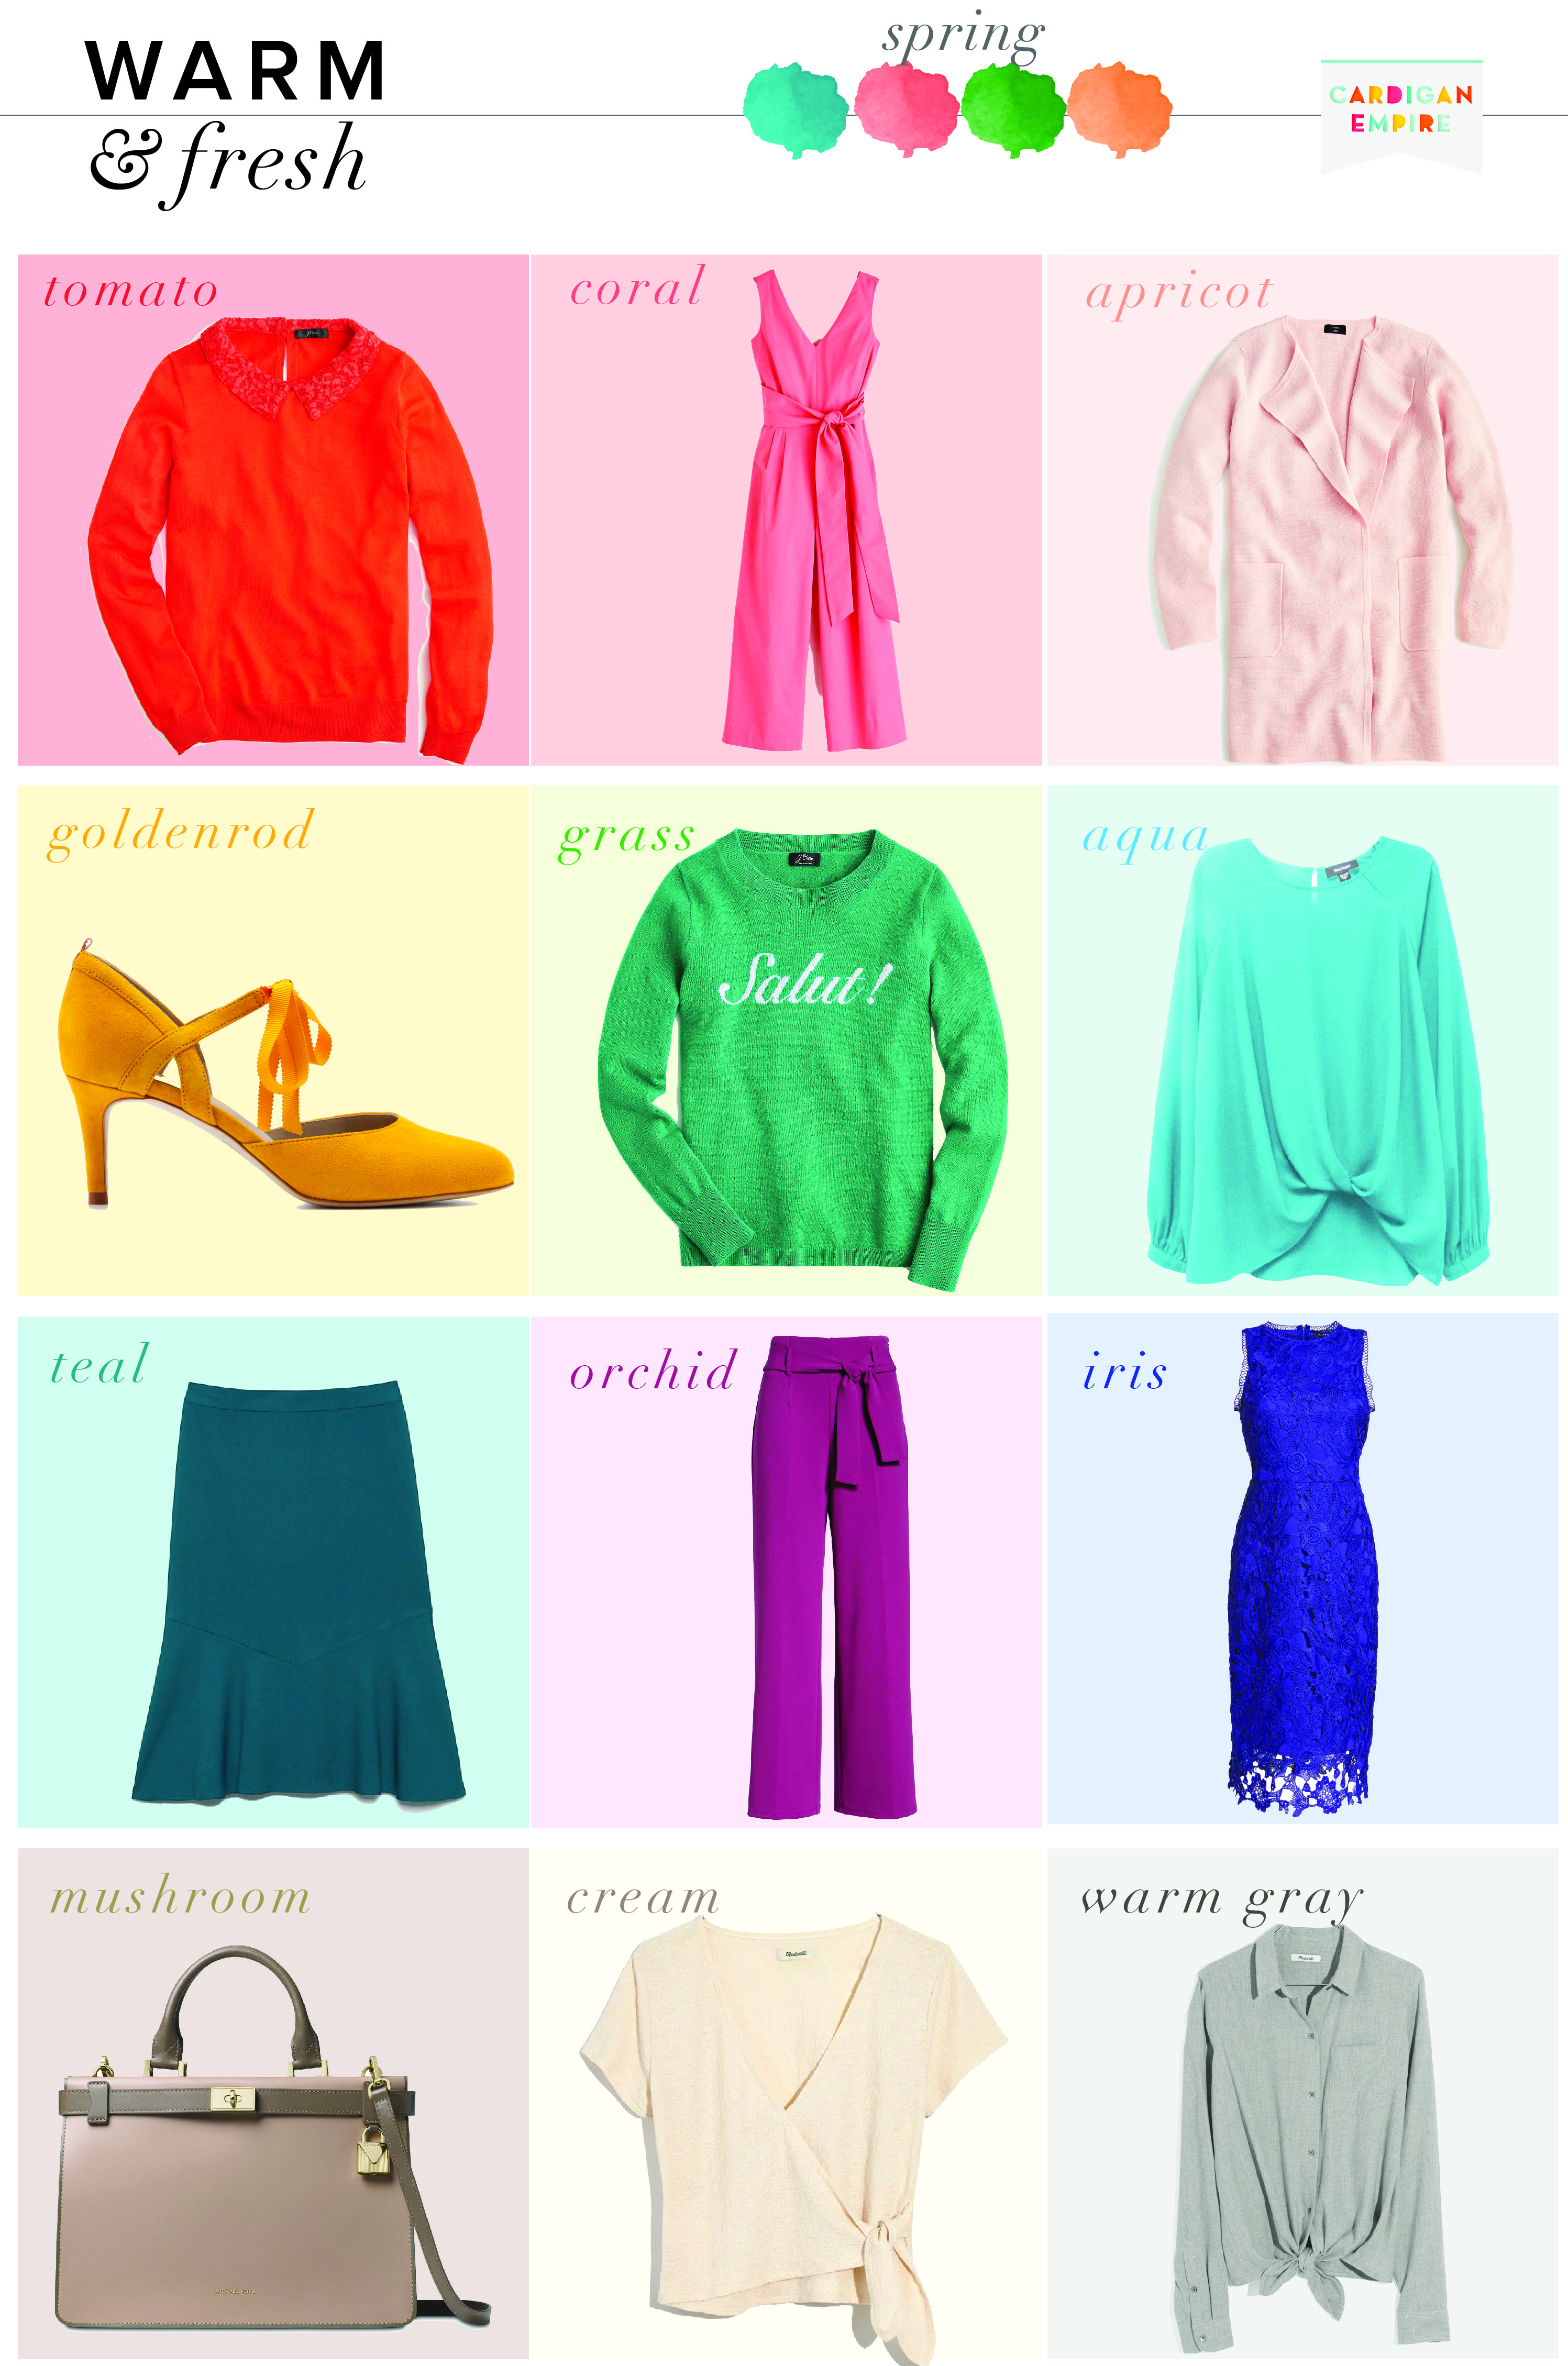 3a01f8c528019 So what should you wear? Below are some of my favorite ideas for mixing and  matching a warm and fresh capsule wardrobe.